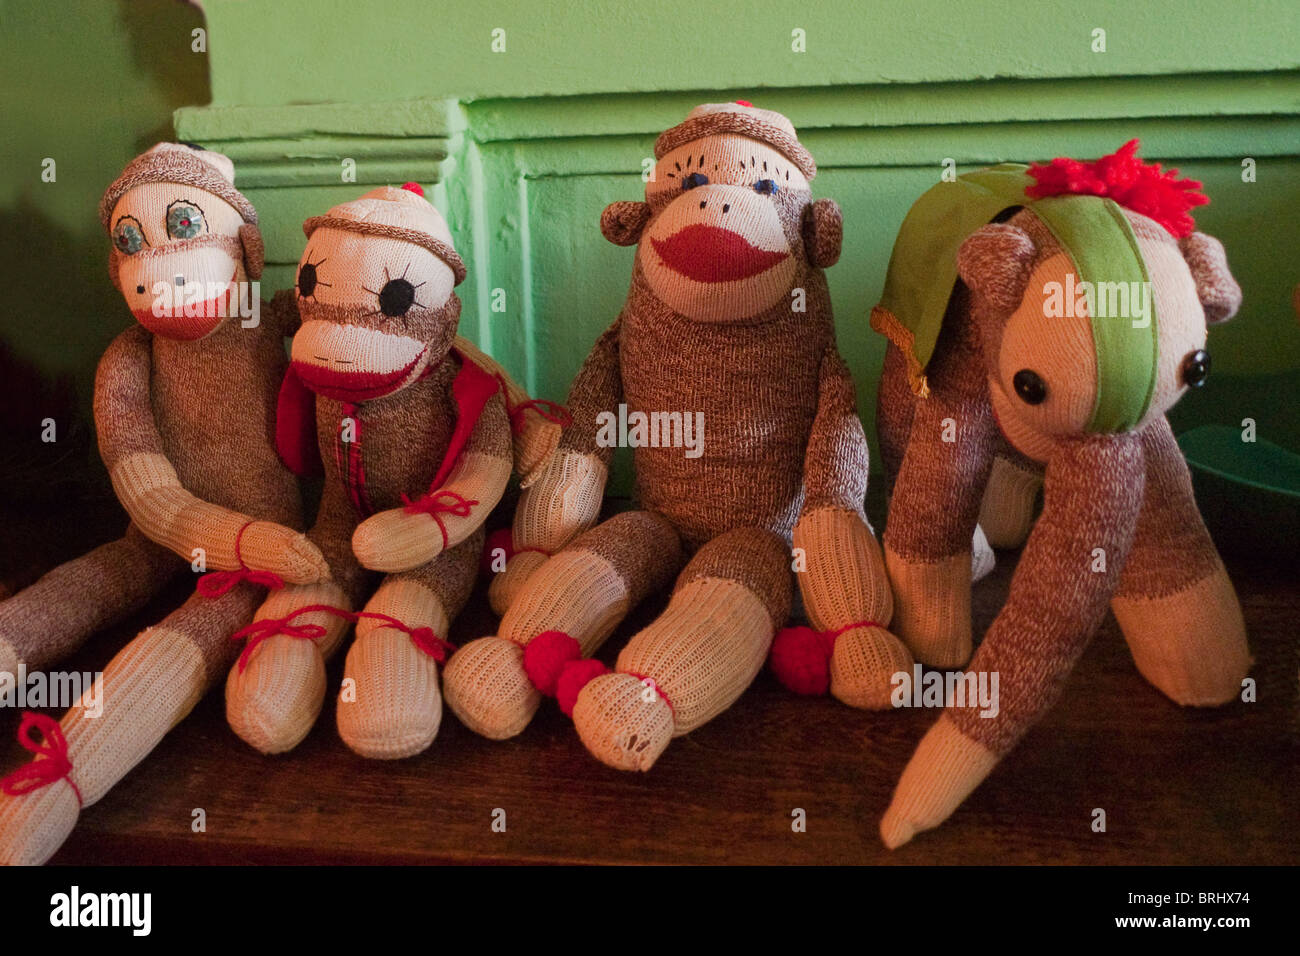 Socke Stockfotos & Socke Bilder - Alamy